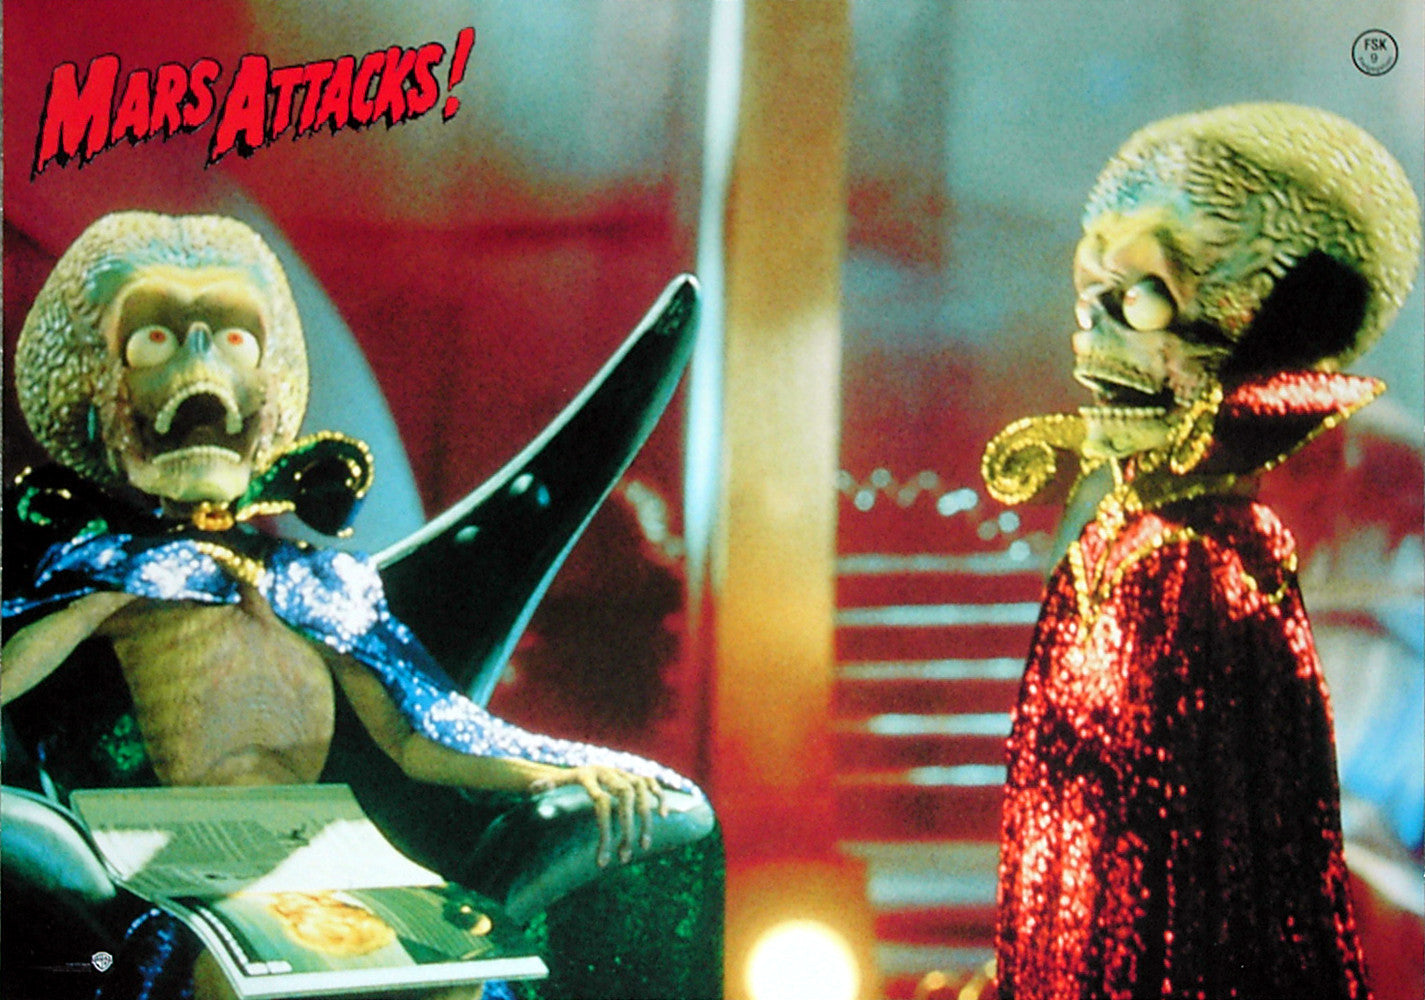 MARS ATTACKS! - German lobby card v2